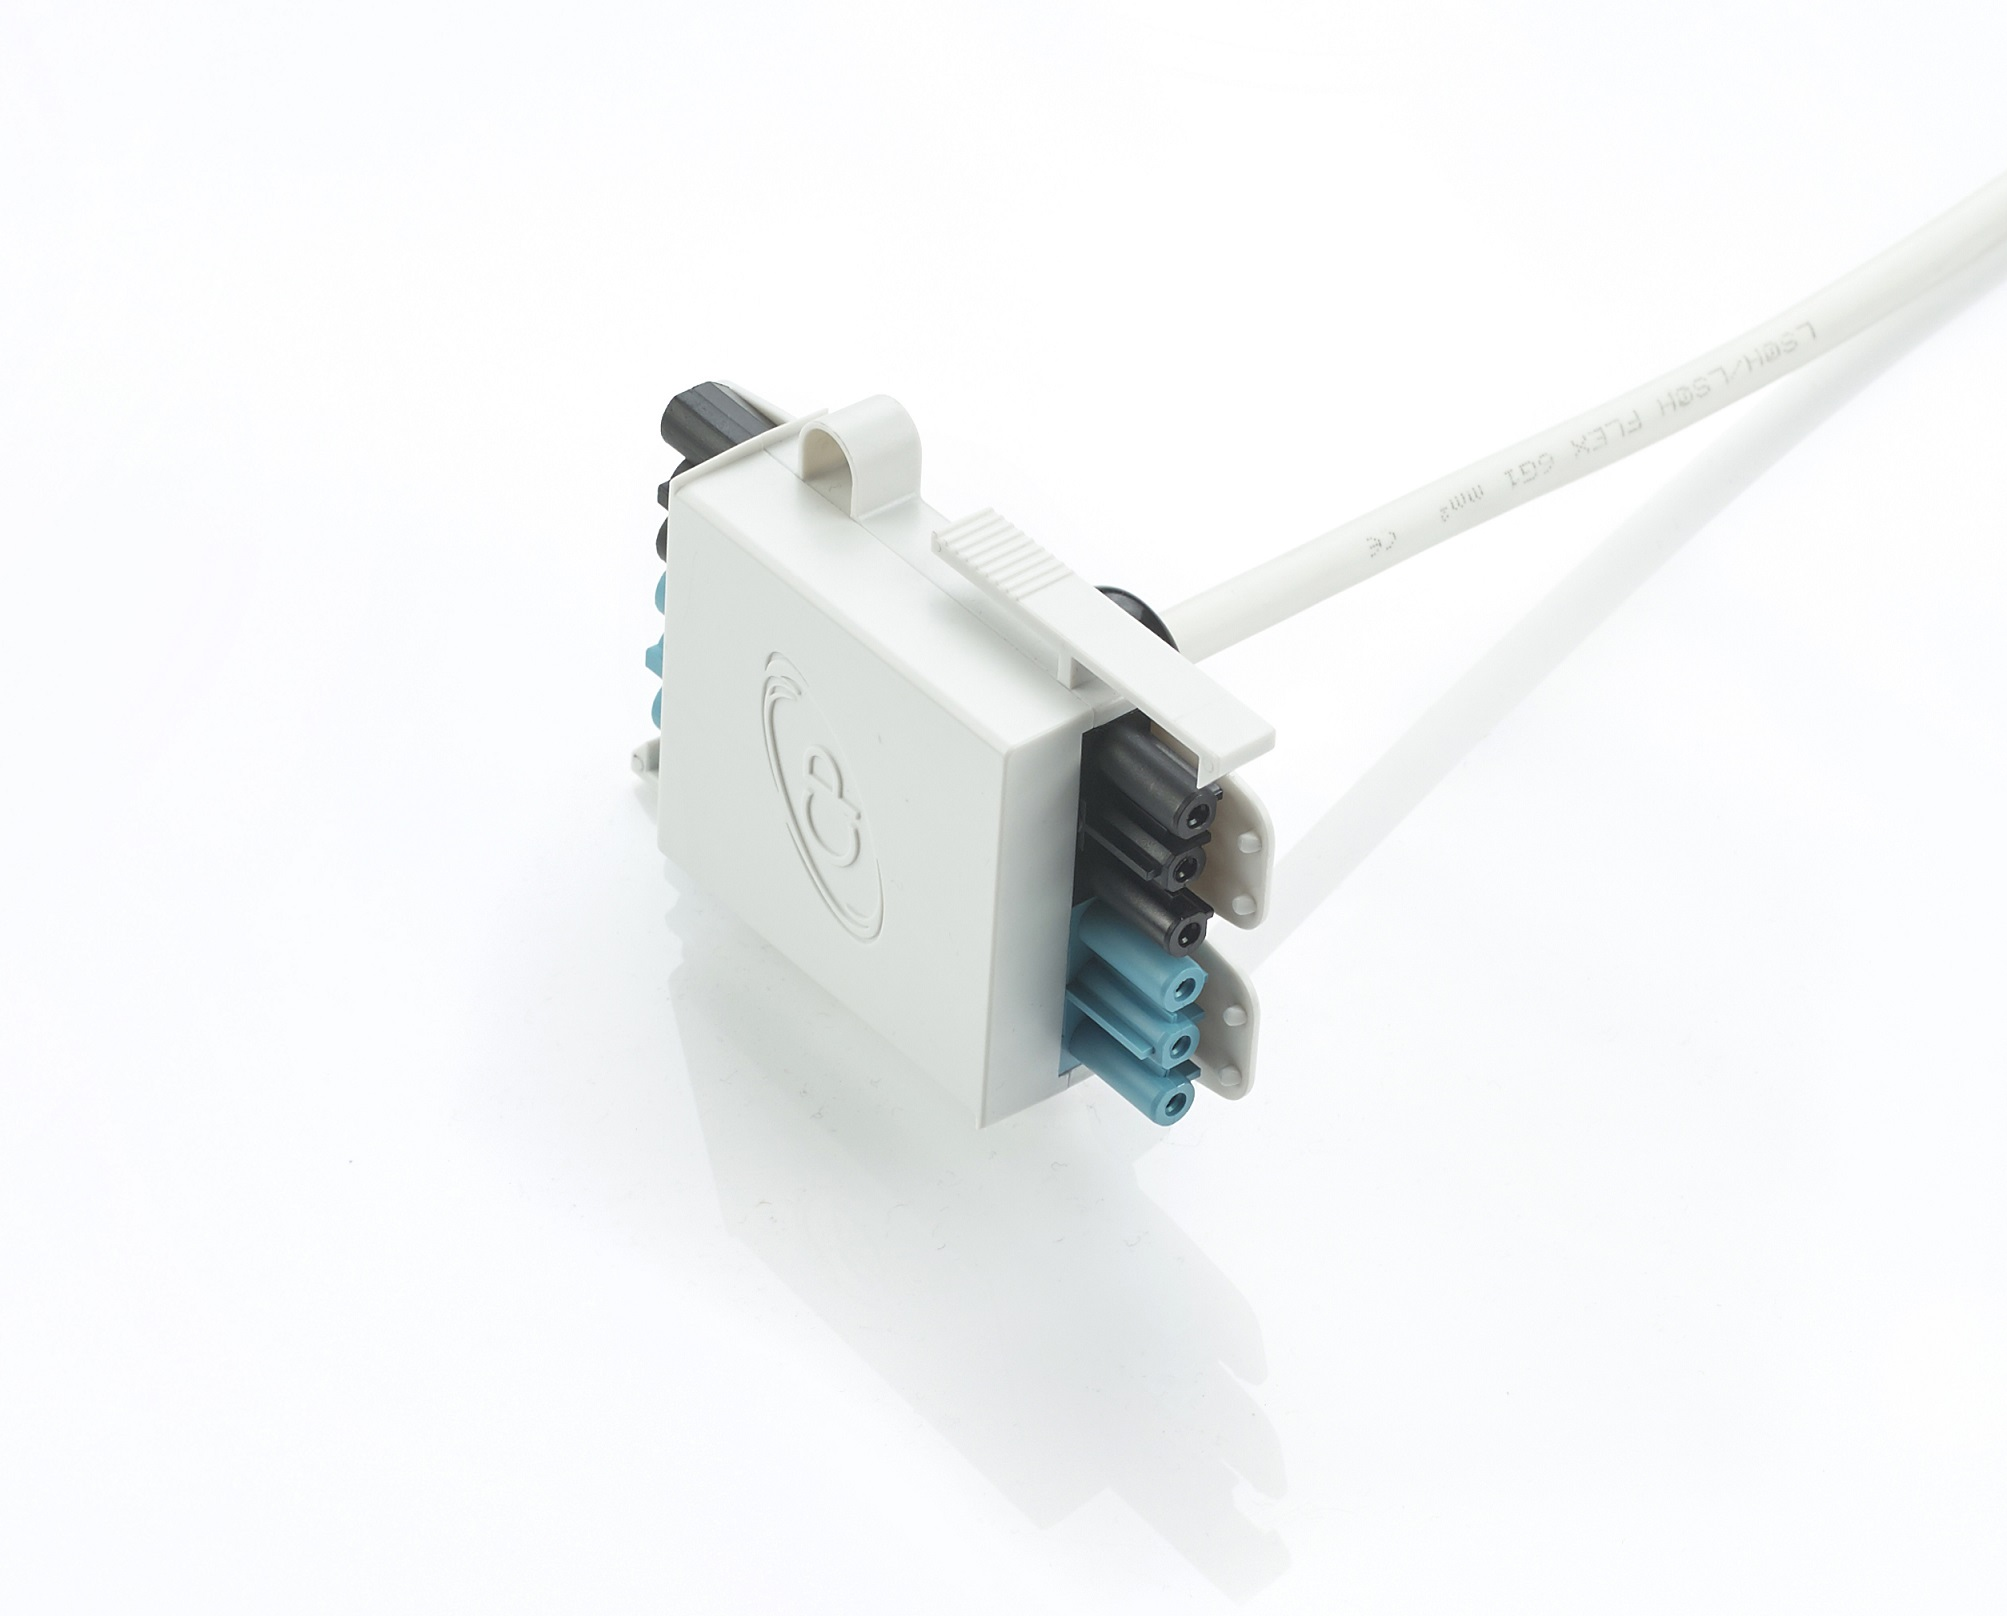 CP Electronics get modular wiring solutions down to a tee | News ...